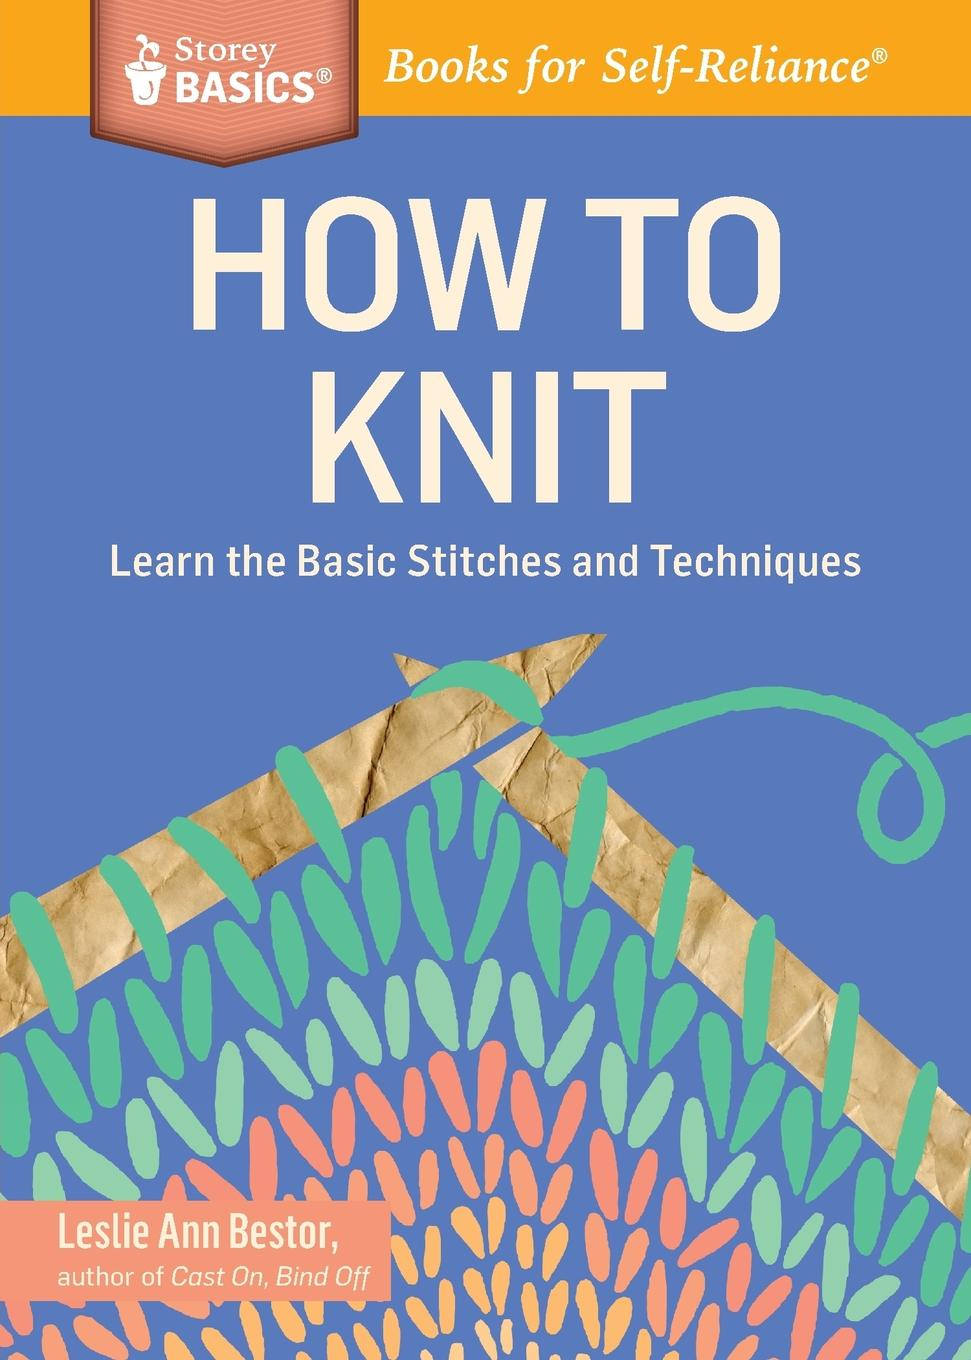 Leslie Ann Bestor How to Knit. Learn the Basic Stitches and Techniques. A Storey BASICSA. Title super stitches knitting